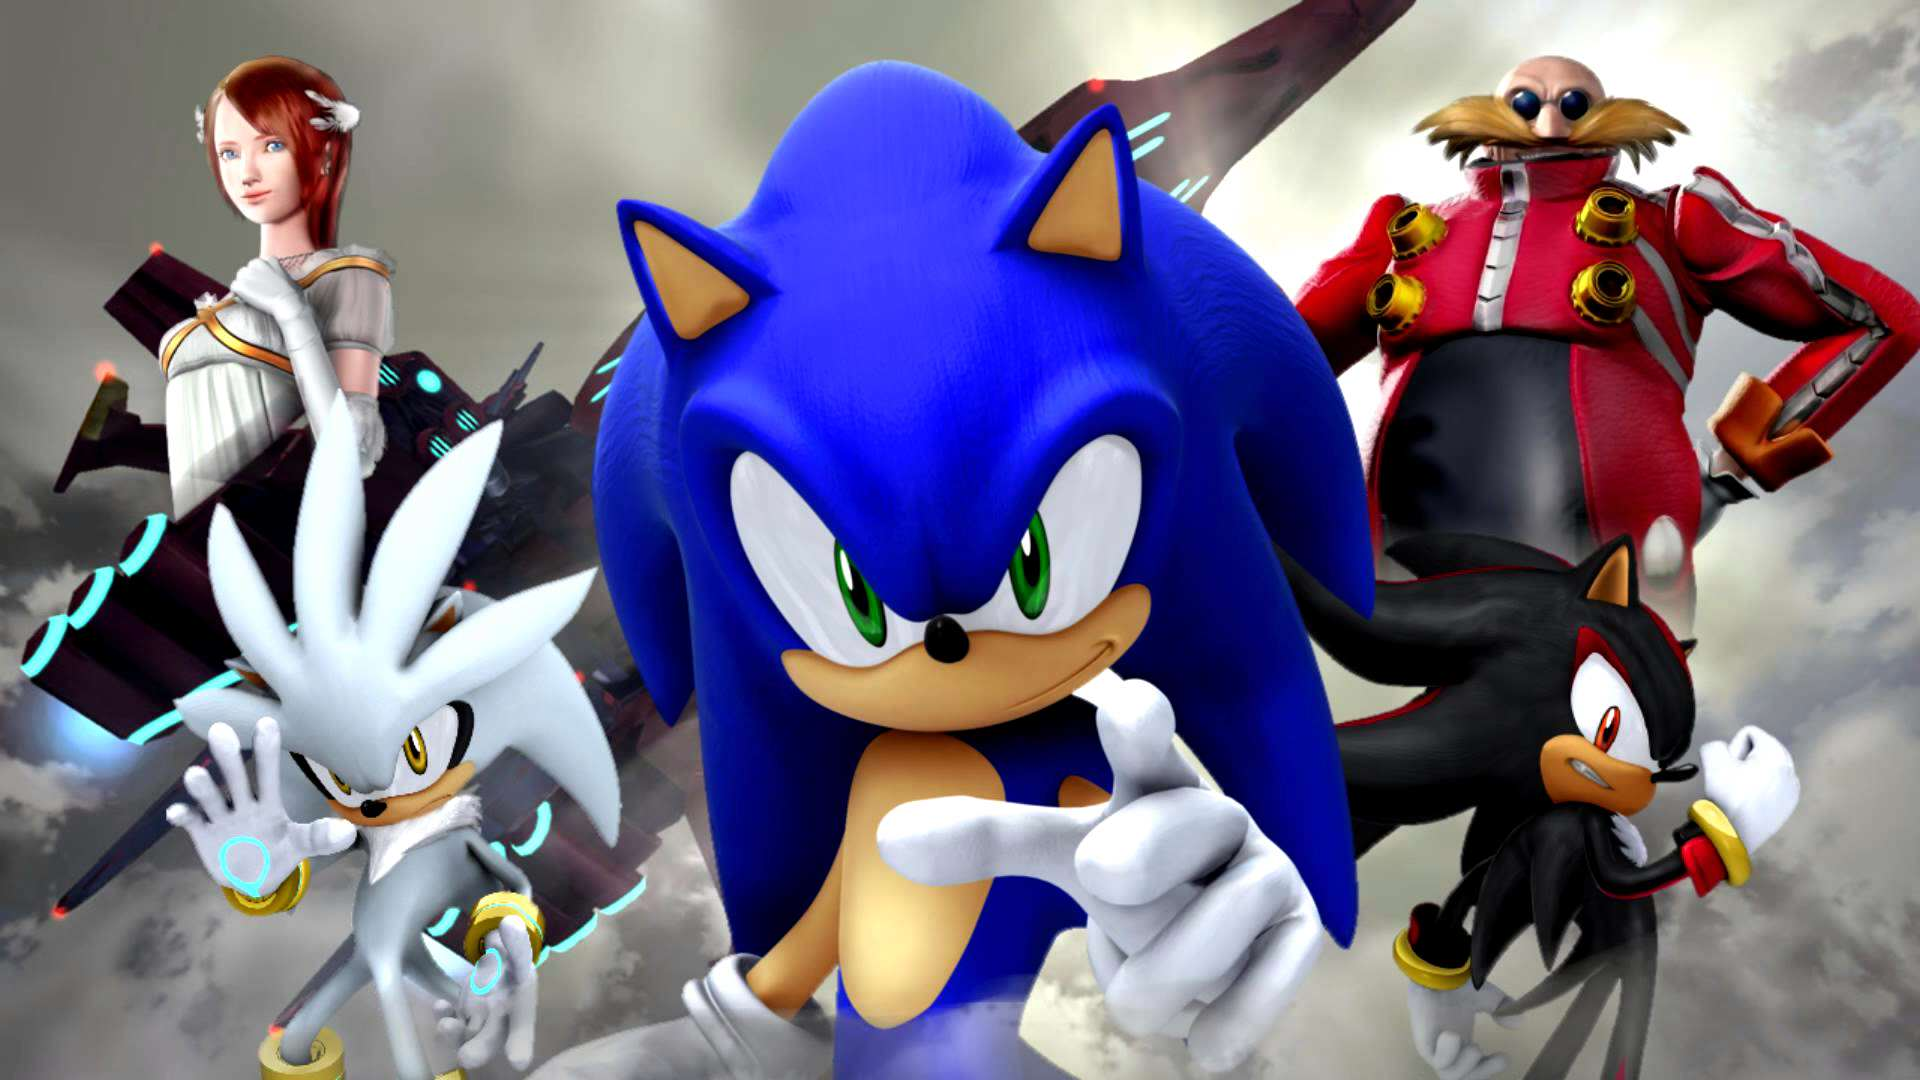 Sonic The Hedgehog Movie Confirmed For 2018, World Collectively Shrugs maxresdefault 1 6